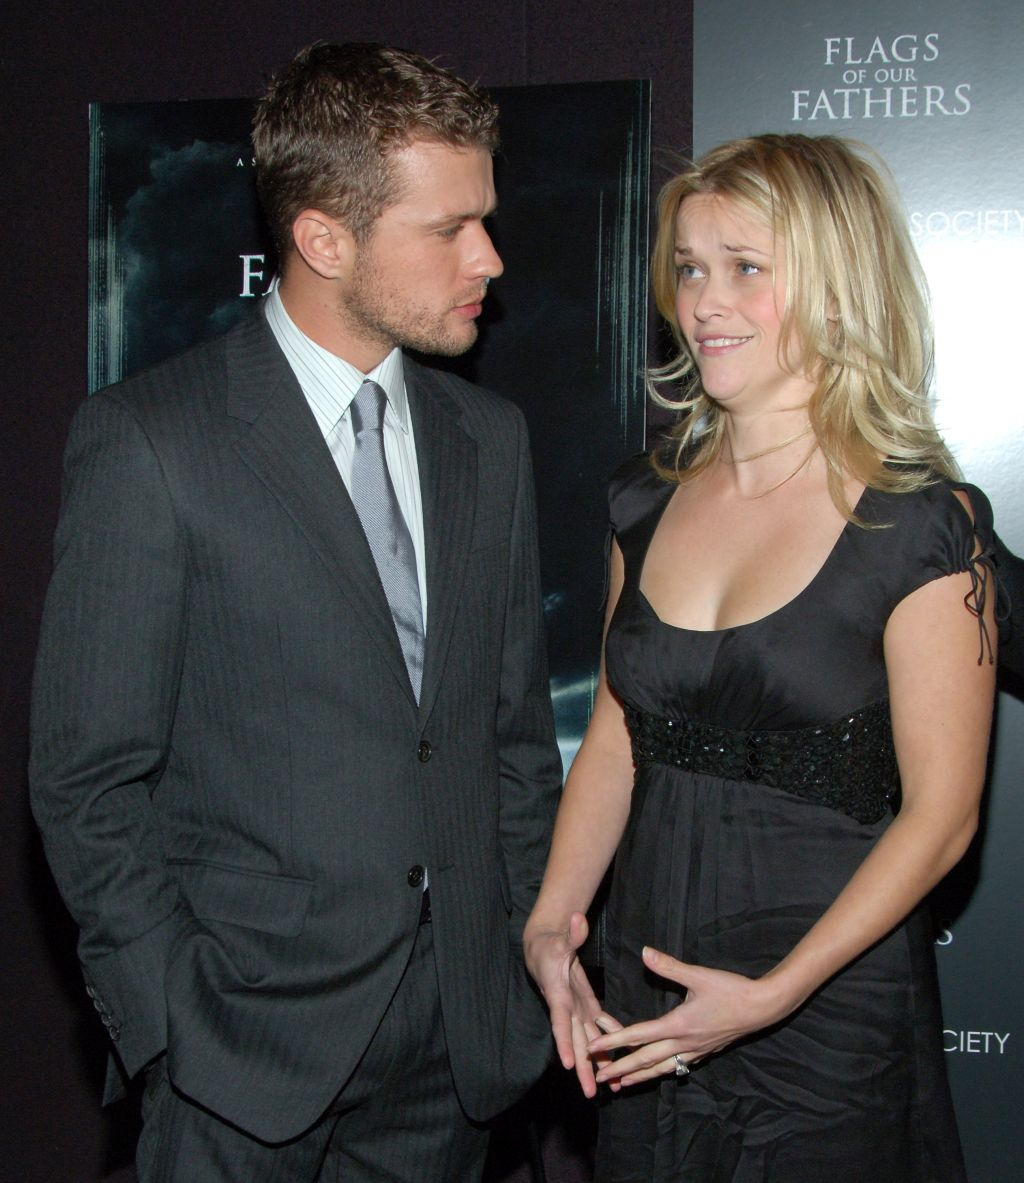 Reese and ryan